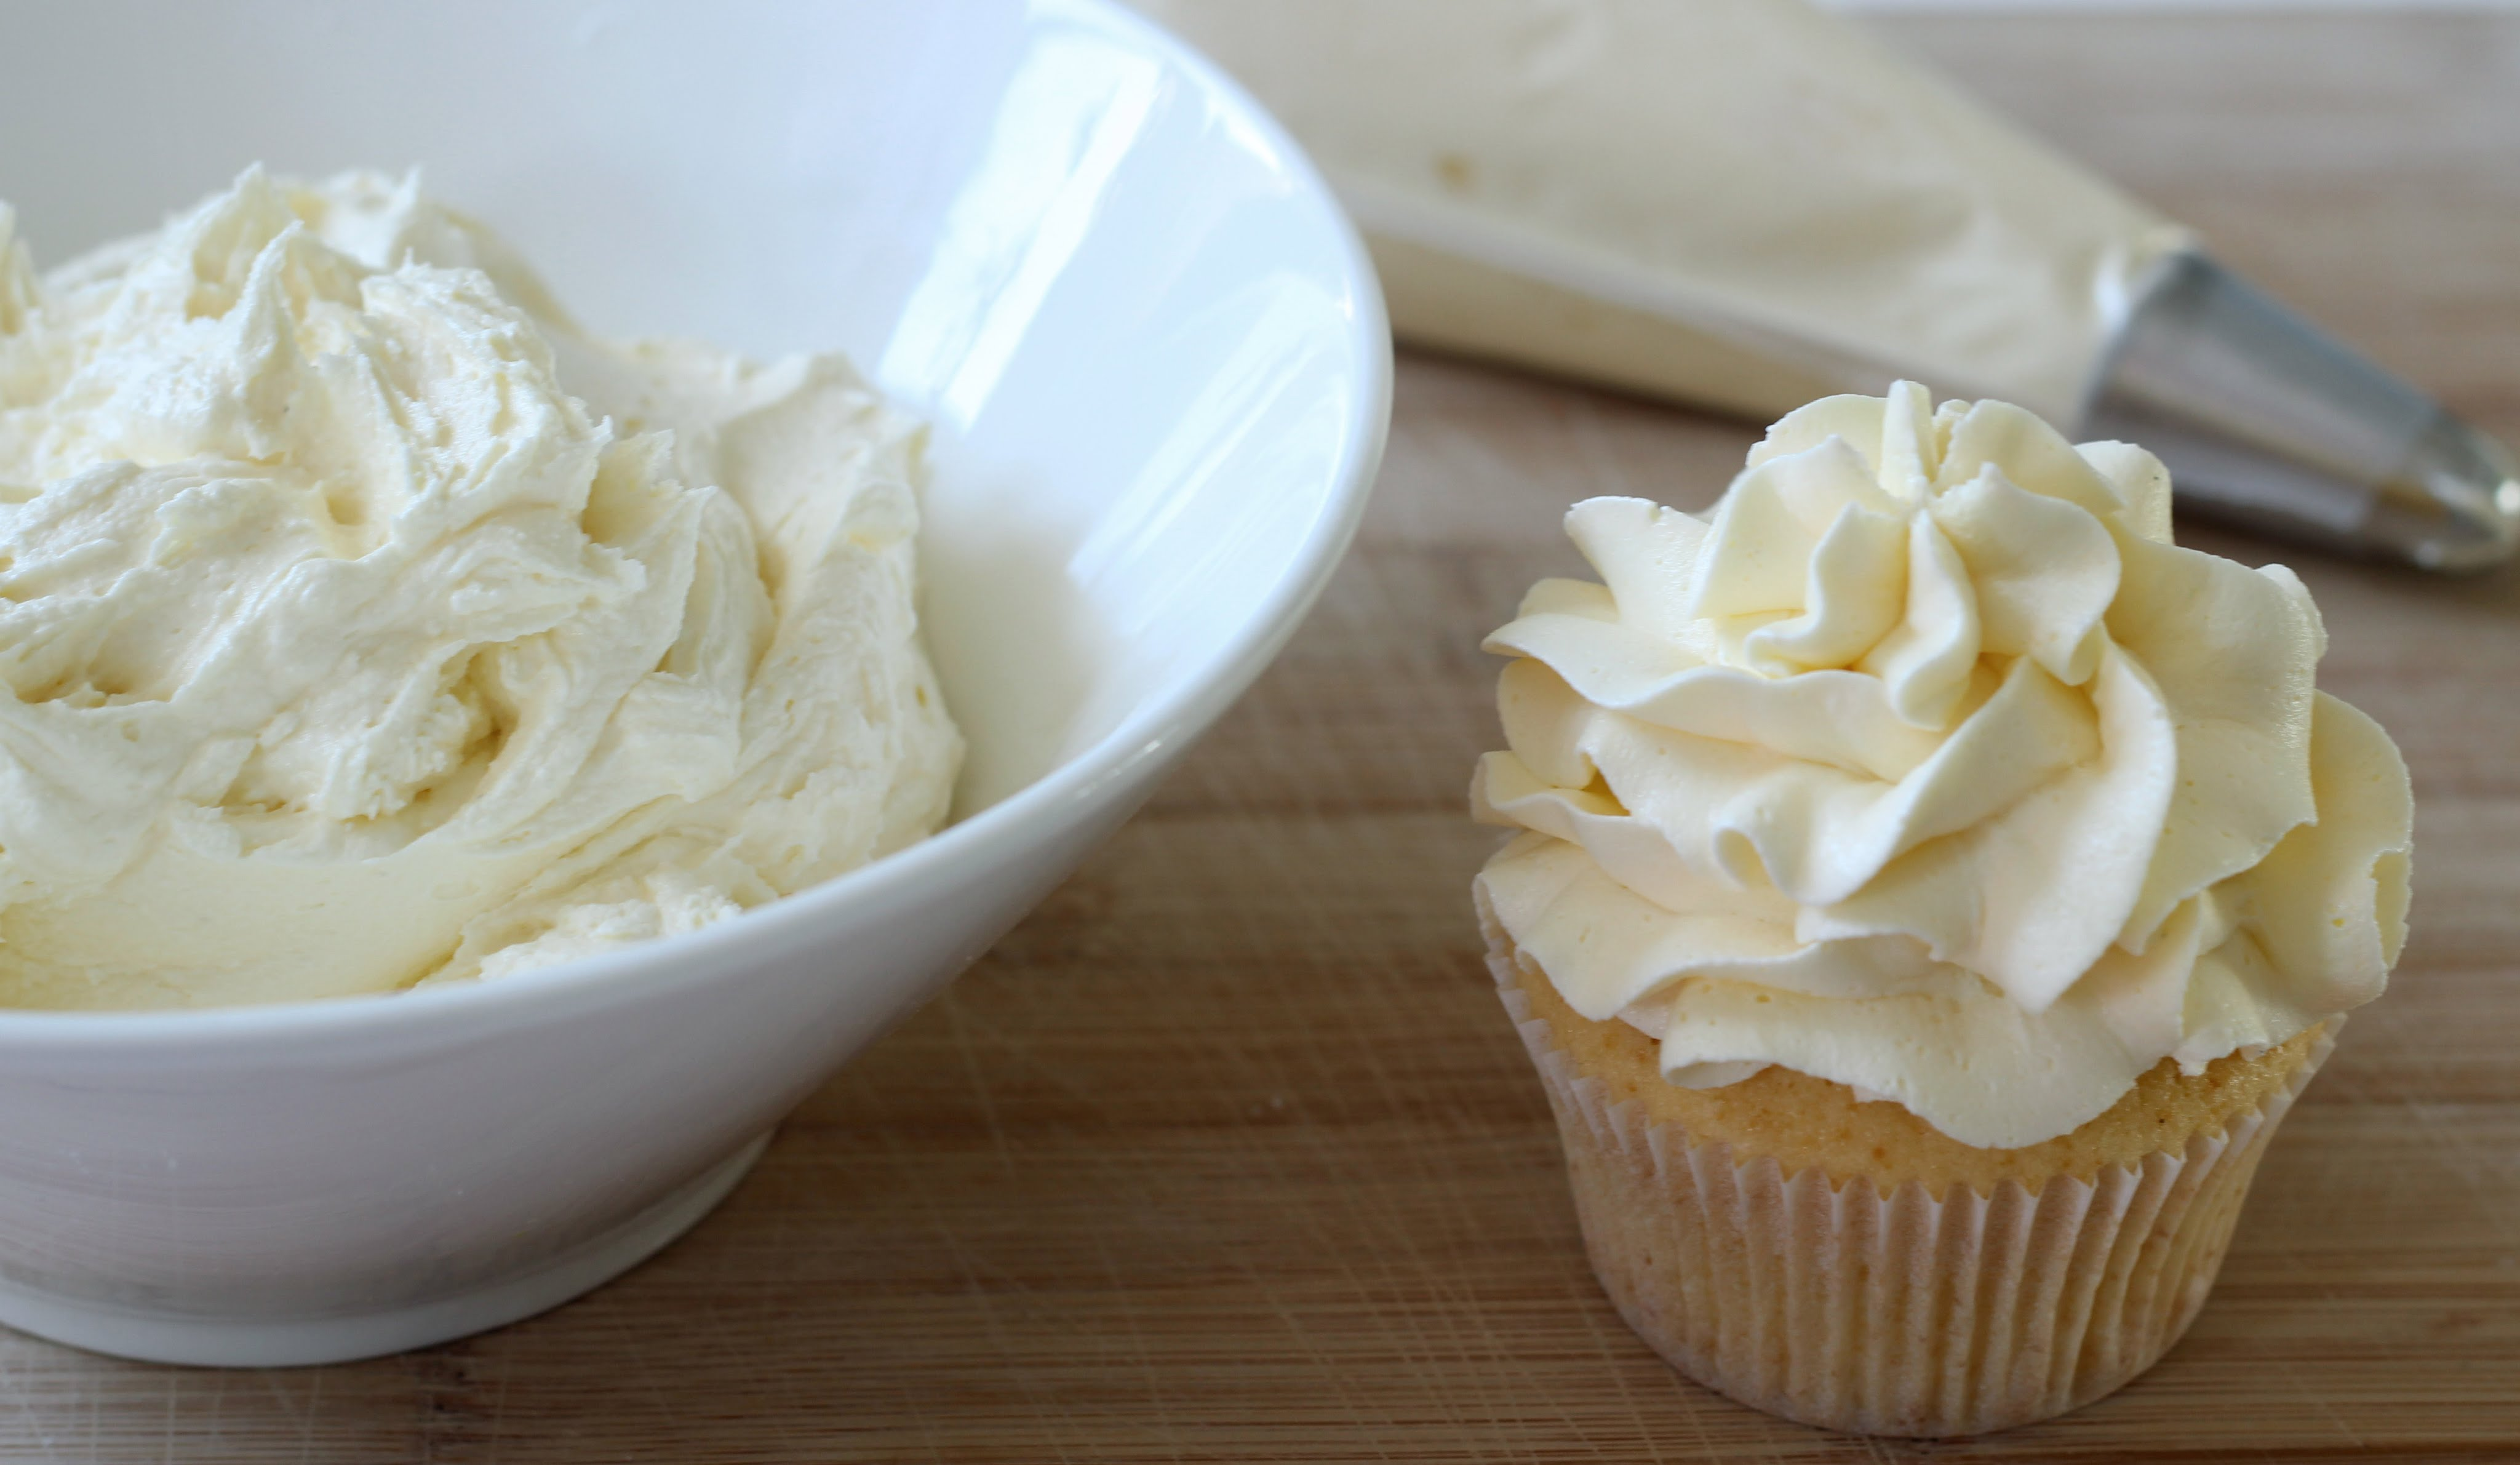 How to Make Buttercream Icing or Frosting